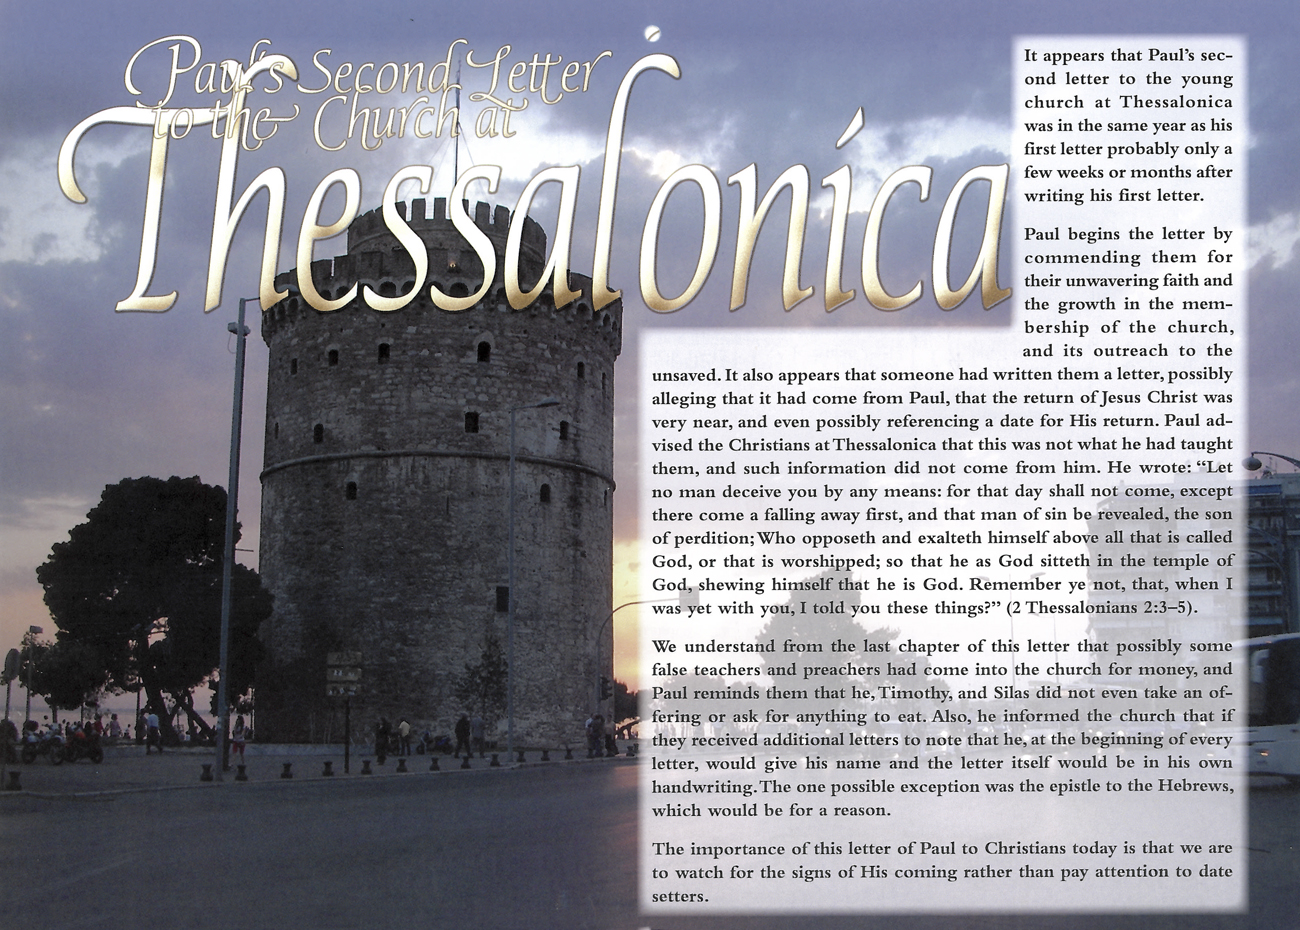 2012 Prophecy Calendar: September - Paul's Second Letter to the Church at Thessalonica